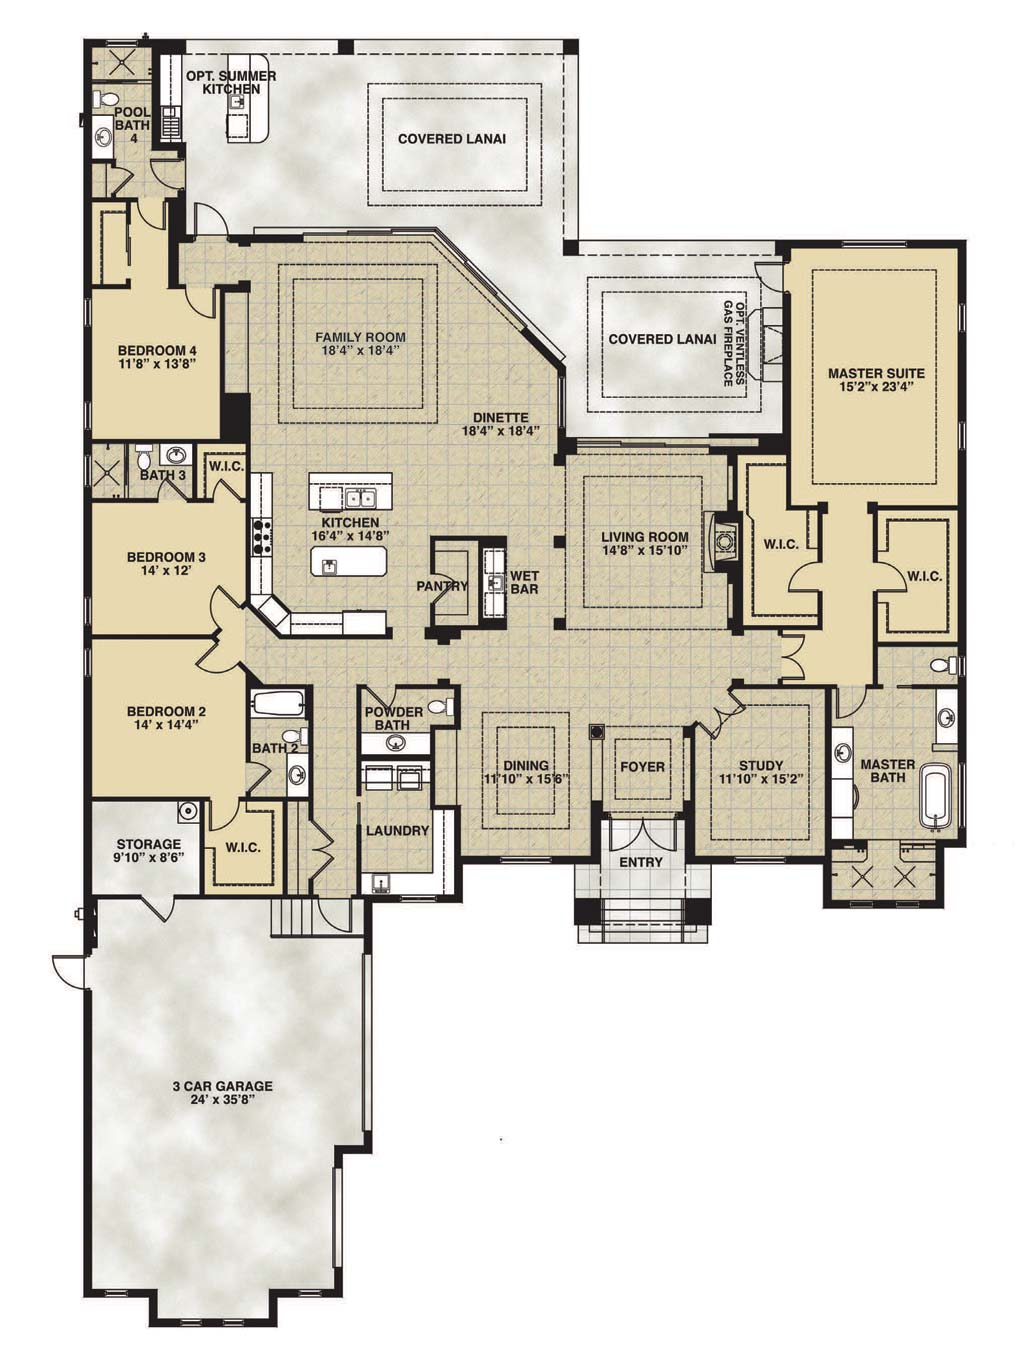 Stella Floor Plan in Bay Woods, Stock Construction, Four Bedroom / Four and One Half Bath / Living Room / Family Room / Dining Room / Study / Outdoor Living / 3-Car Garage